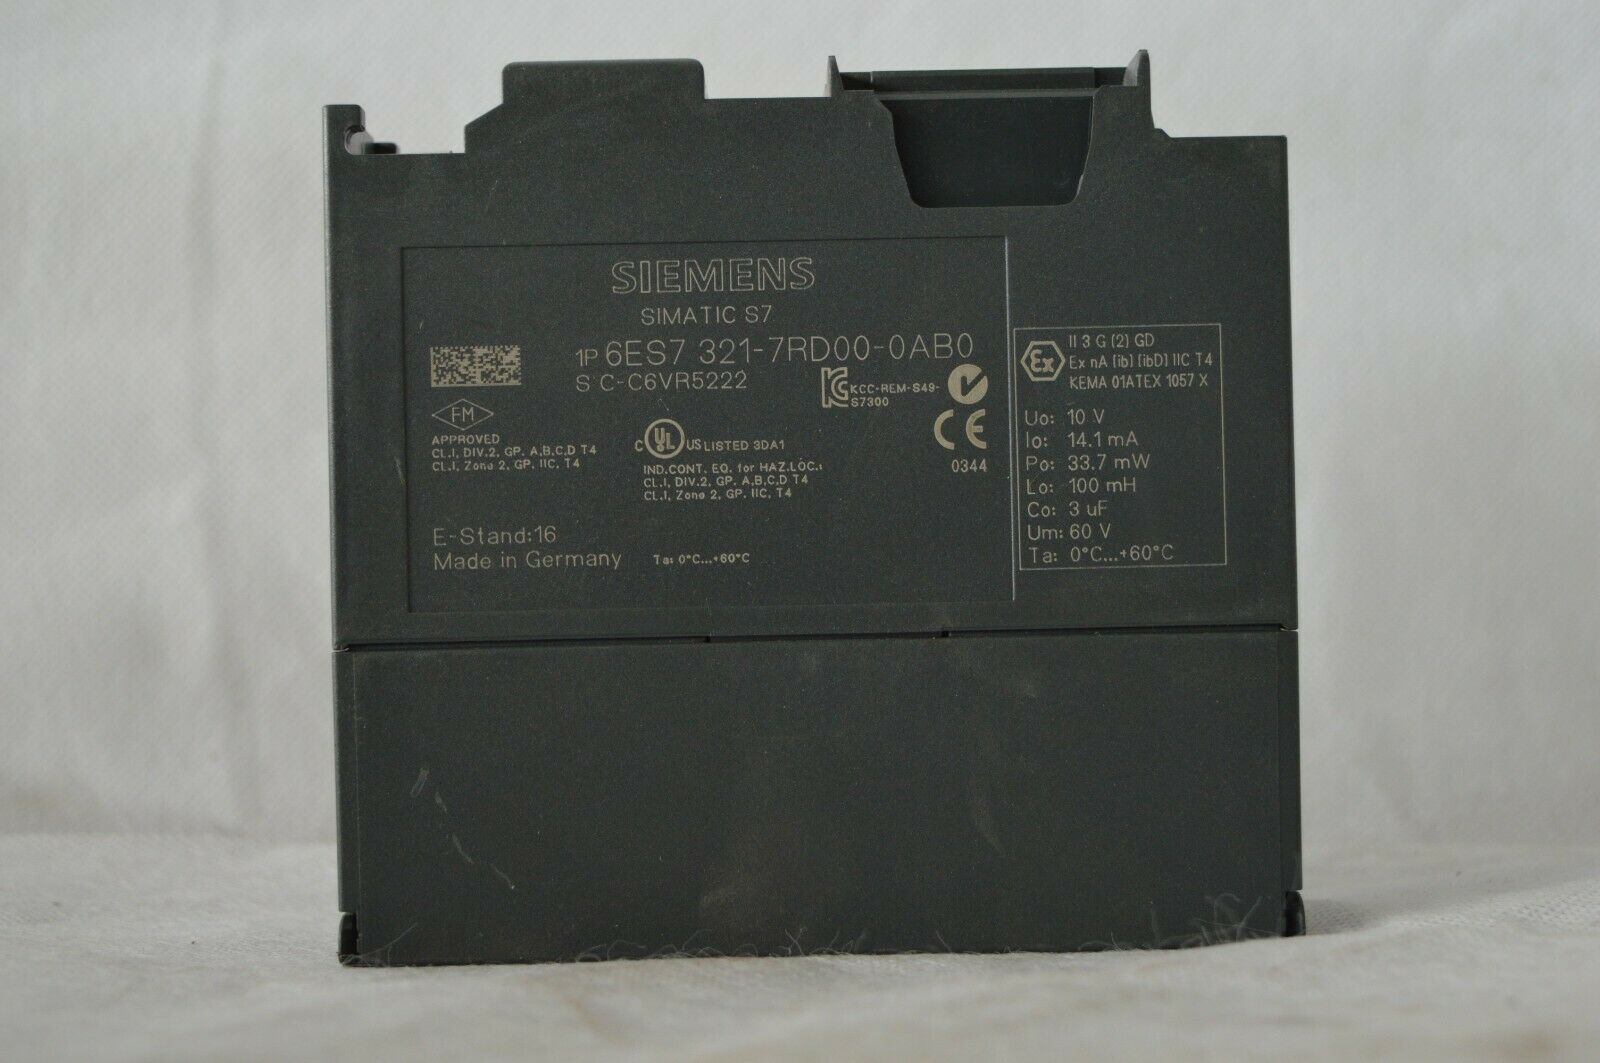 Siemens Simatic S7  6ES7 321-7RD00-0AB0 E-Stand  16 (T.201)